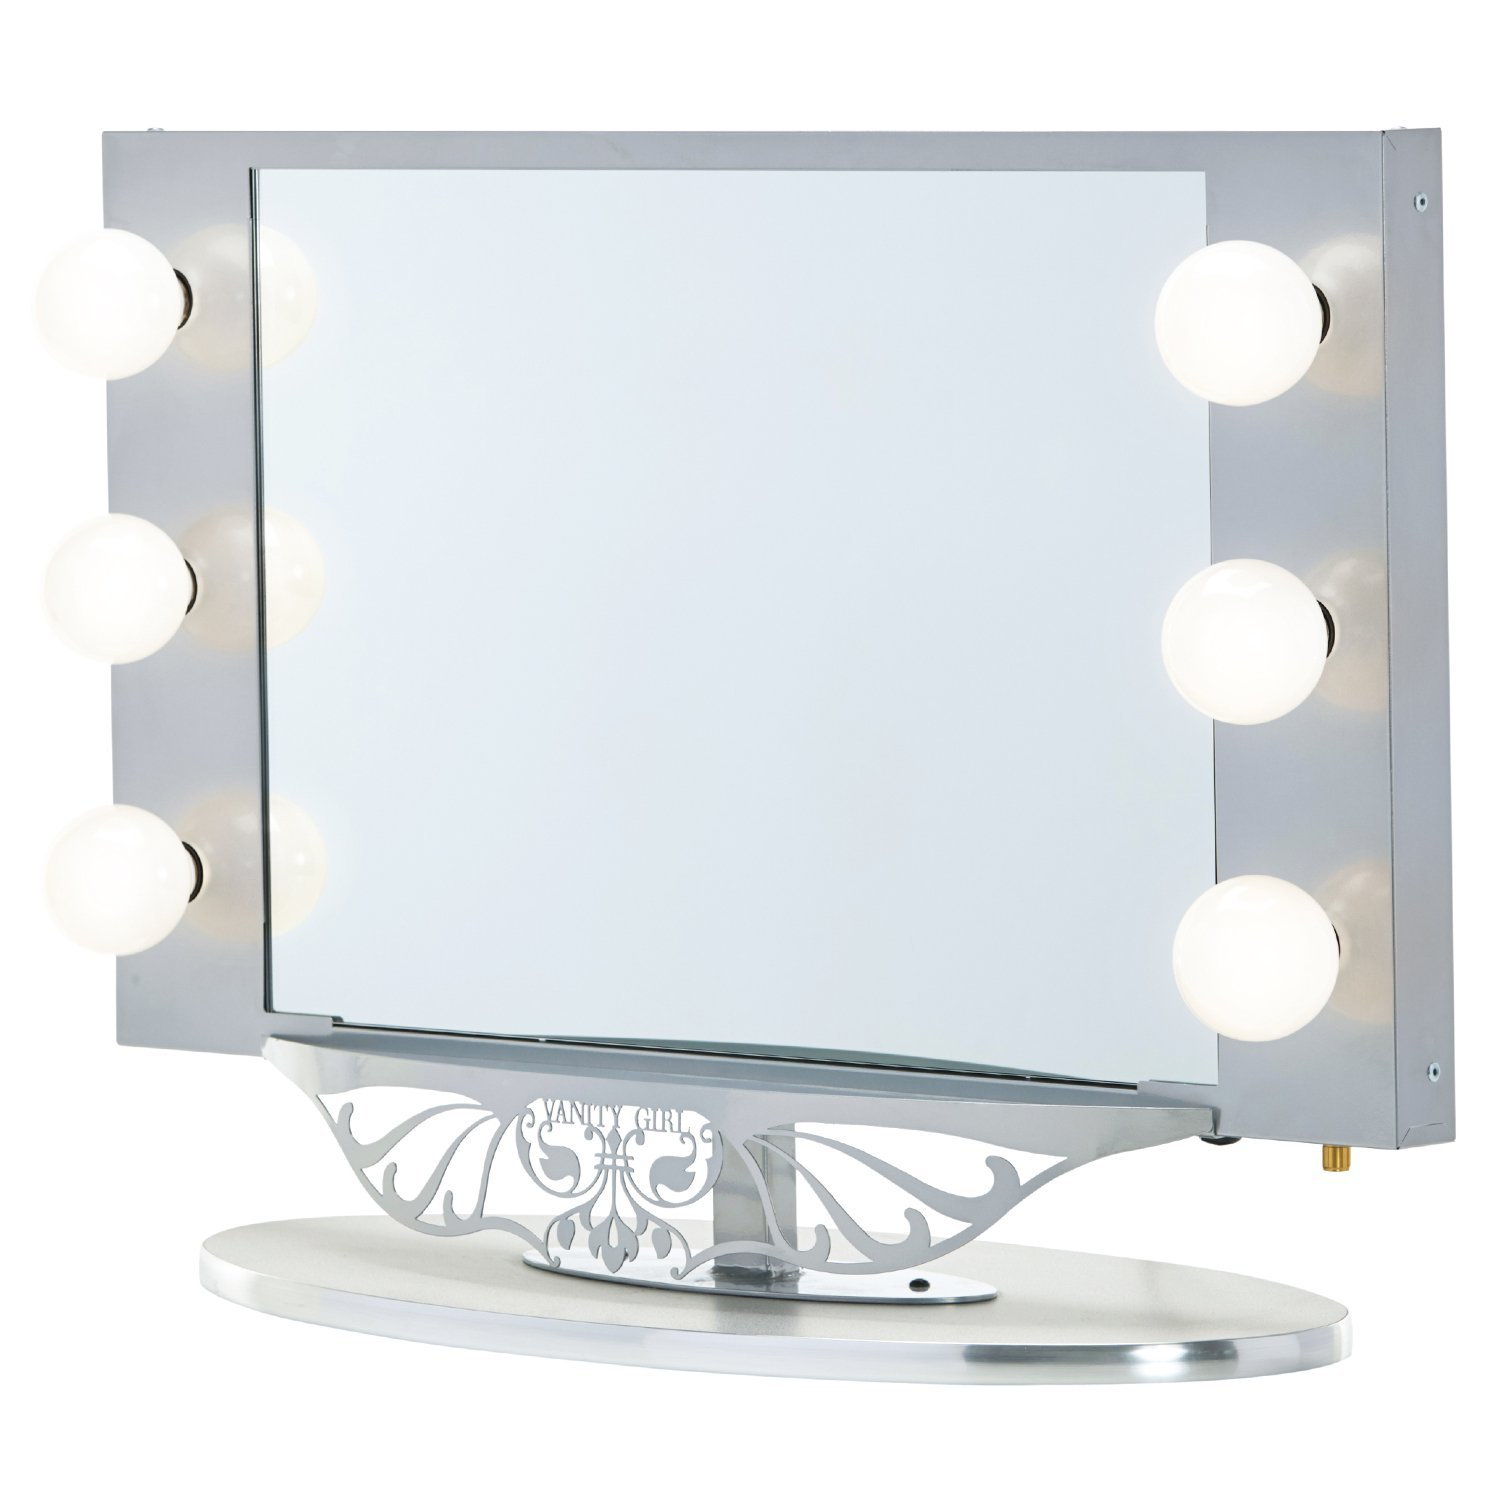 suction magnifying vanity wall mirror light led makeup bathroo lighted mount itm